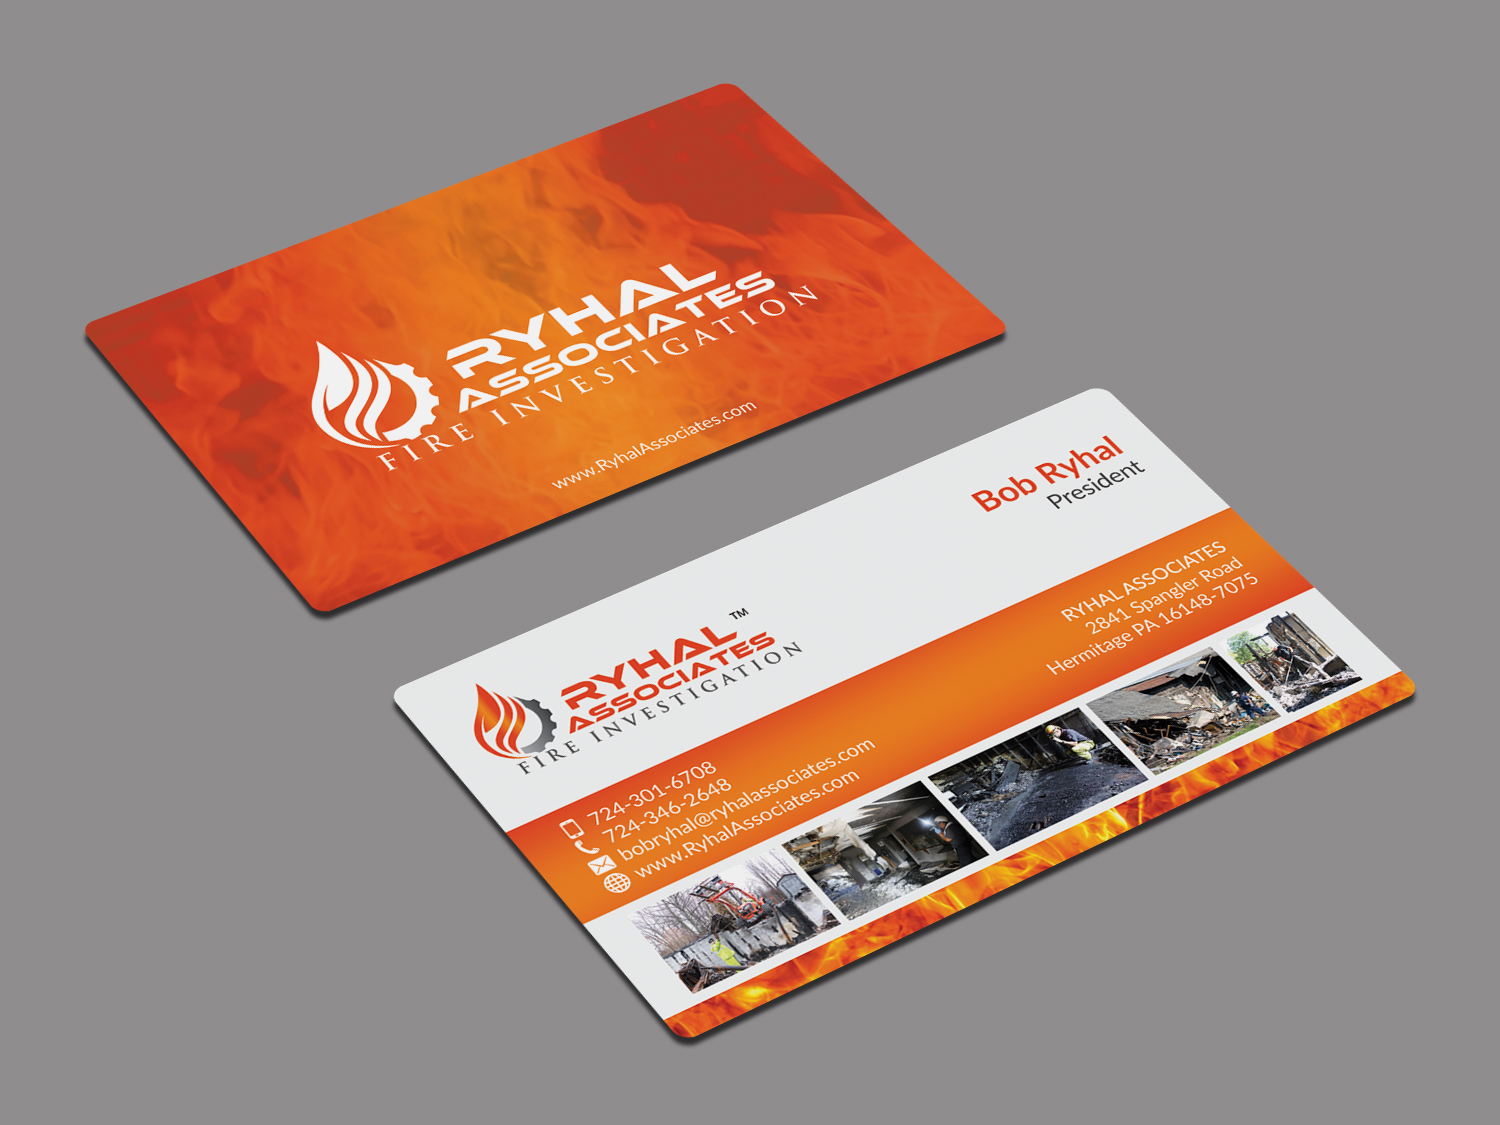 Serious masculine private investigator business card design for a business card design by afhun for this project design 10168334 colourmoves